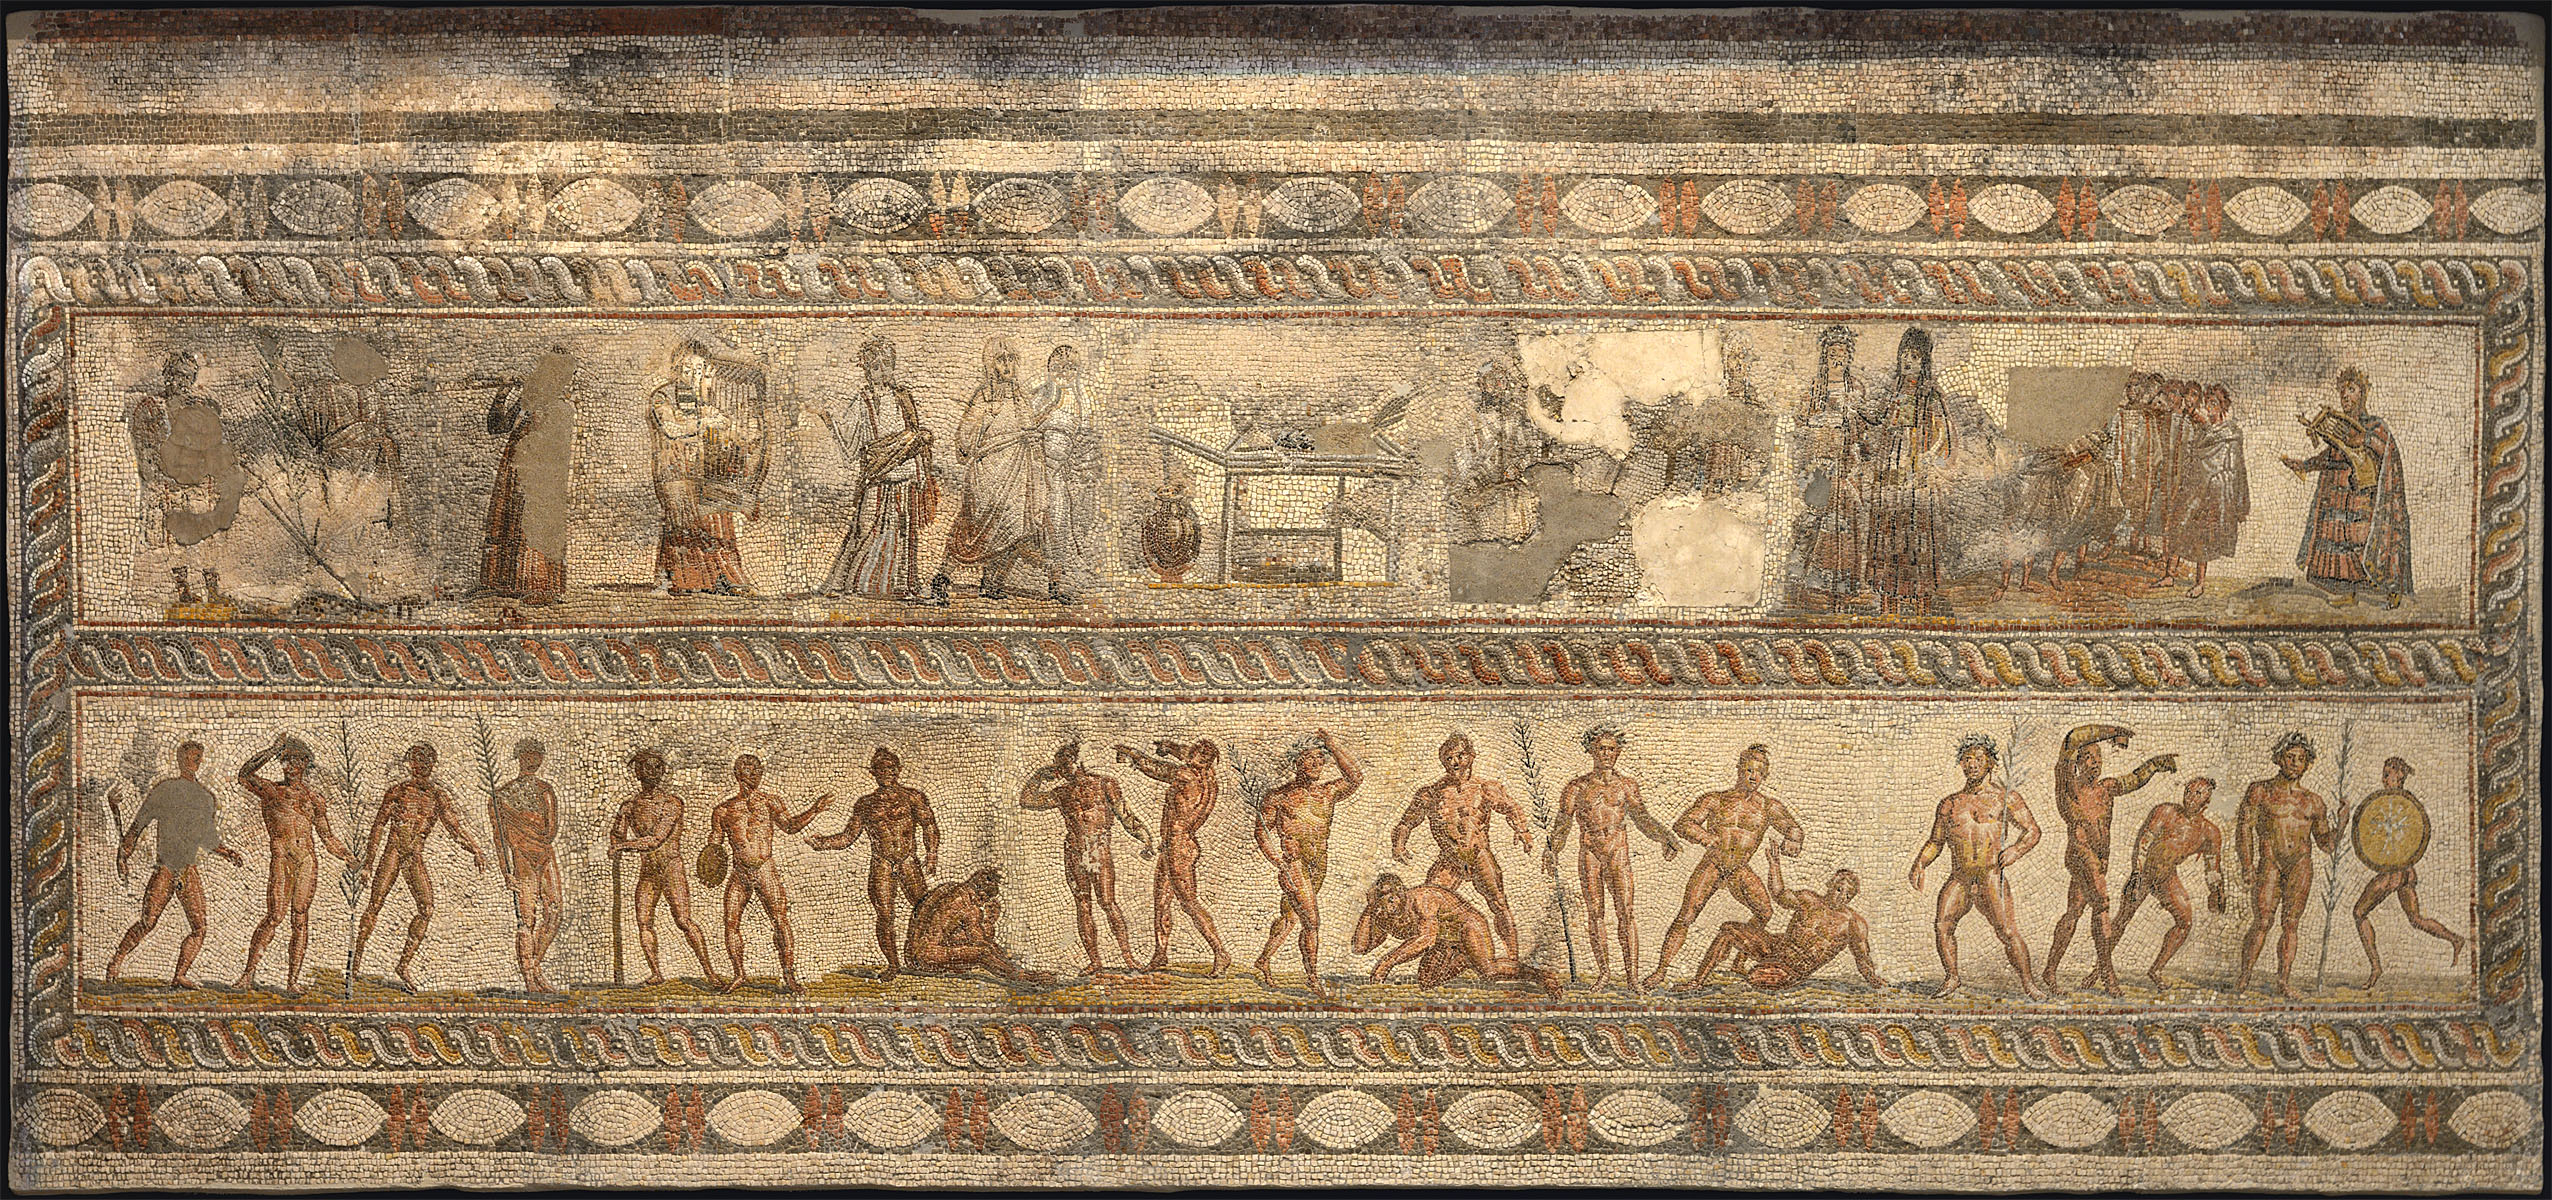 Mosaic floor with artistic and athletic contests. Patras. Late 2nd — early 3rd cent. CE. Patras, New Archaeological Museum